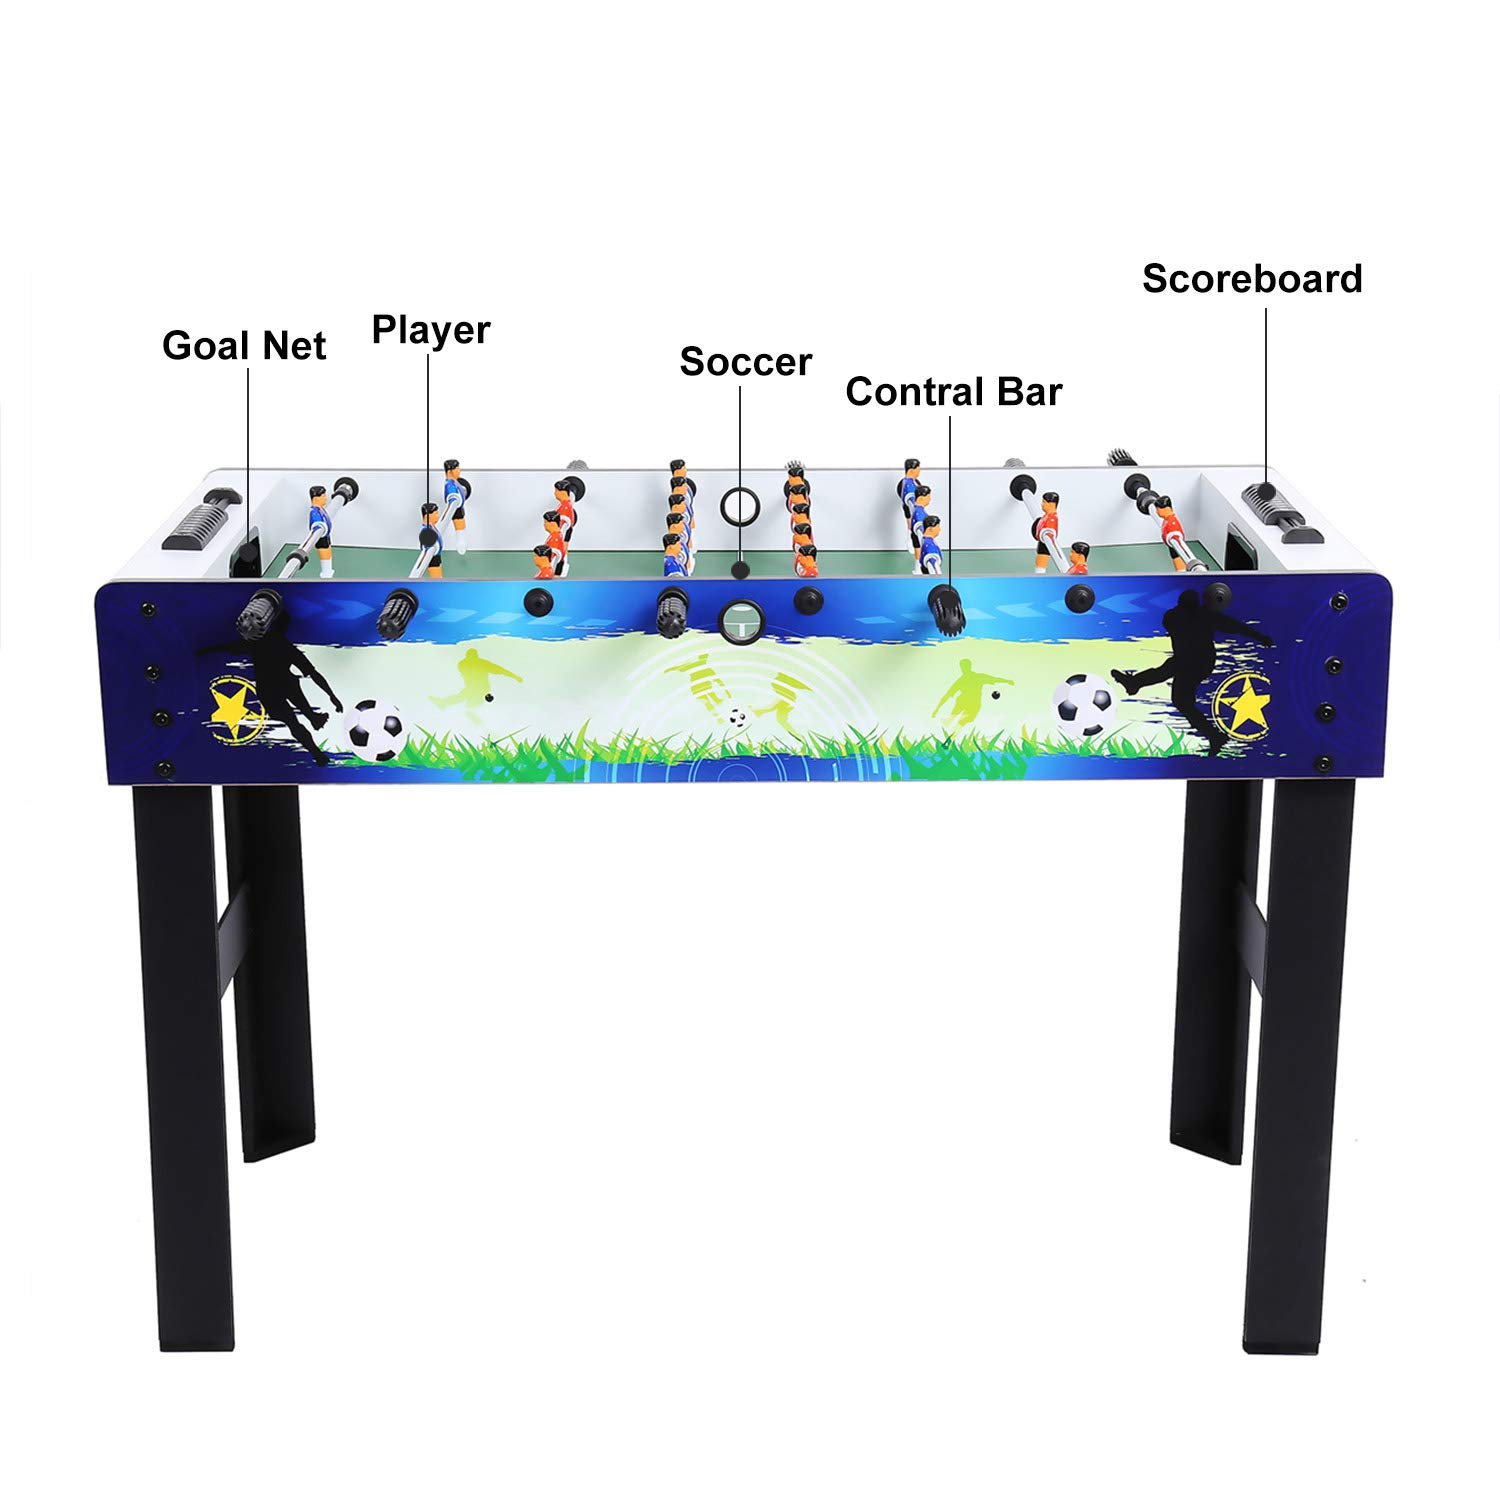 ANCHEER 48'' Foosball Table Soccer Table Arcade Game Room Football Table Sports Game for Kids& Adults- Indoor&Outdoor by ANCHEER (Image #8)